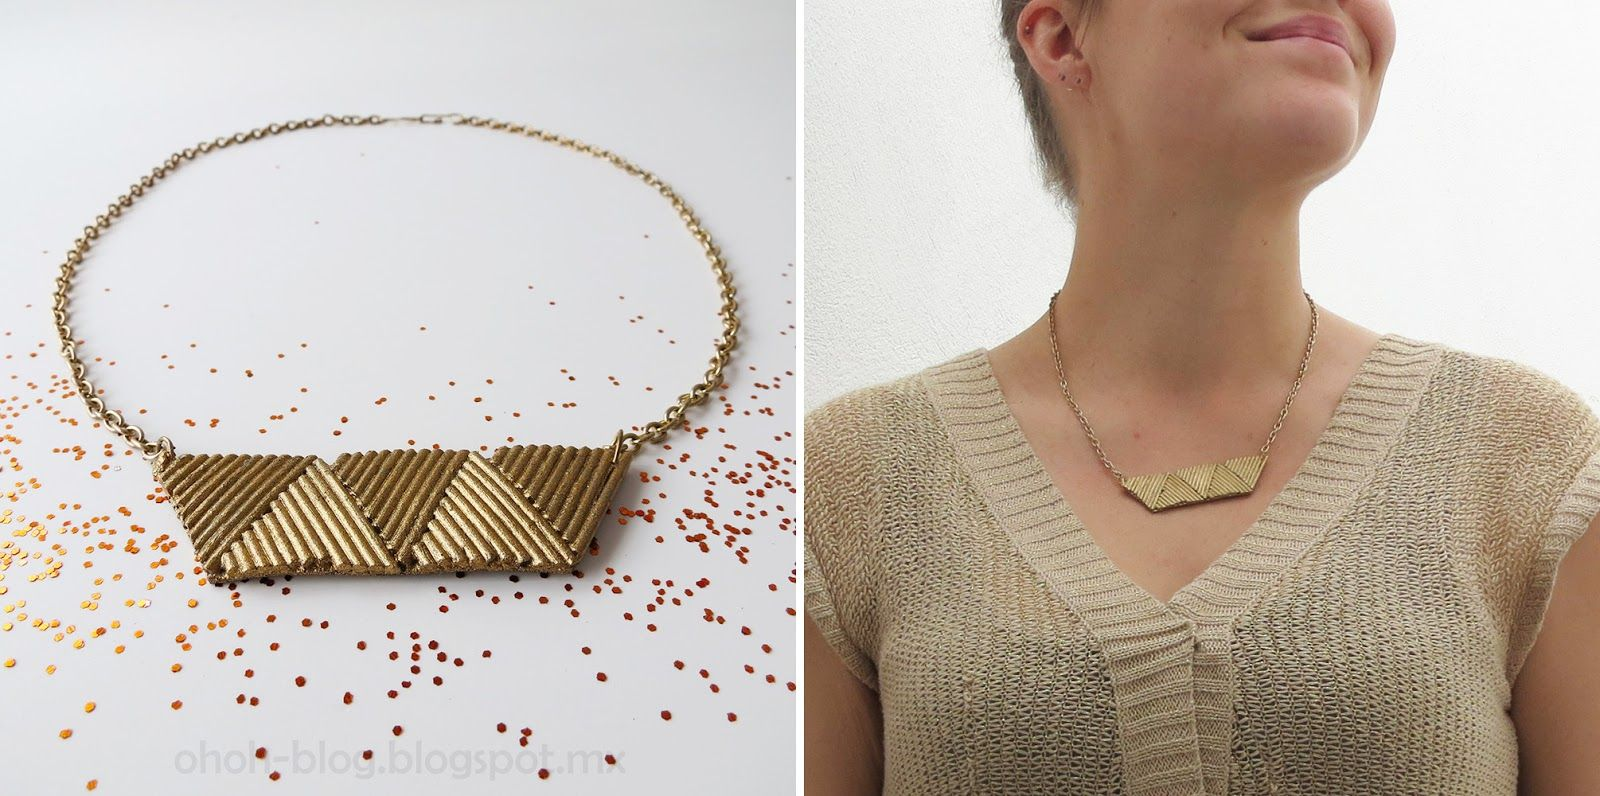 Ohoh Blog - diy and crafts: Pasta necklace / Collar